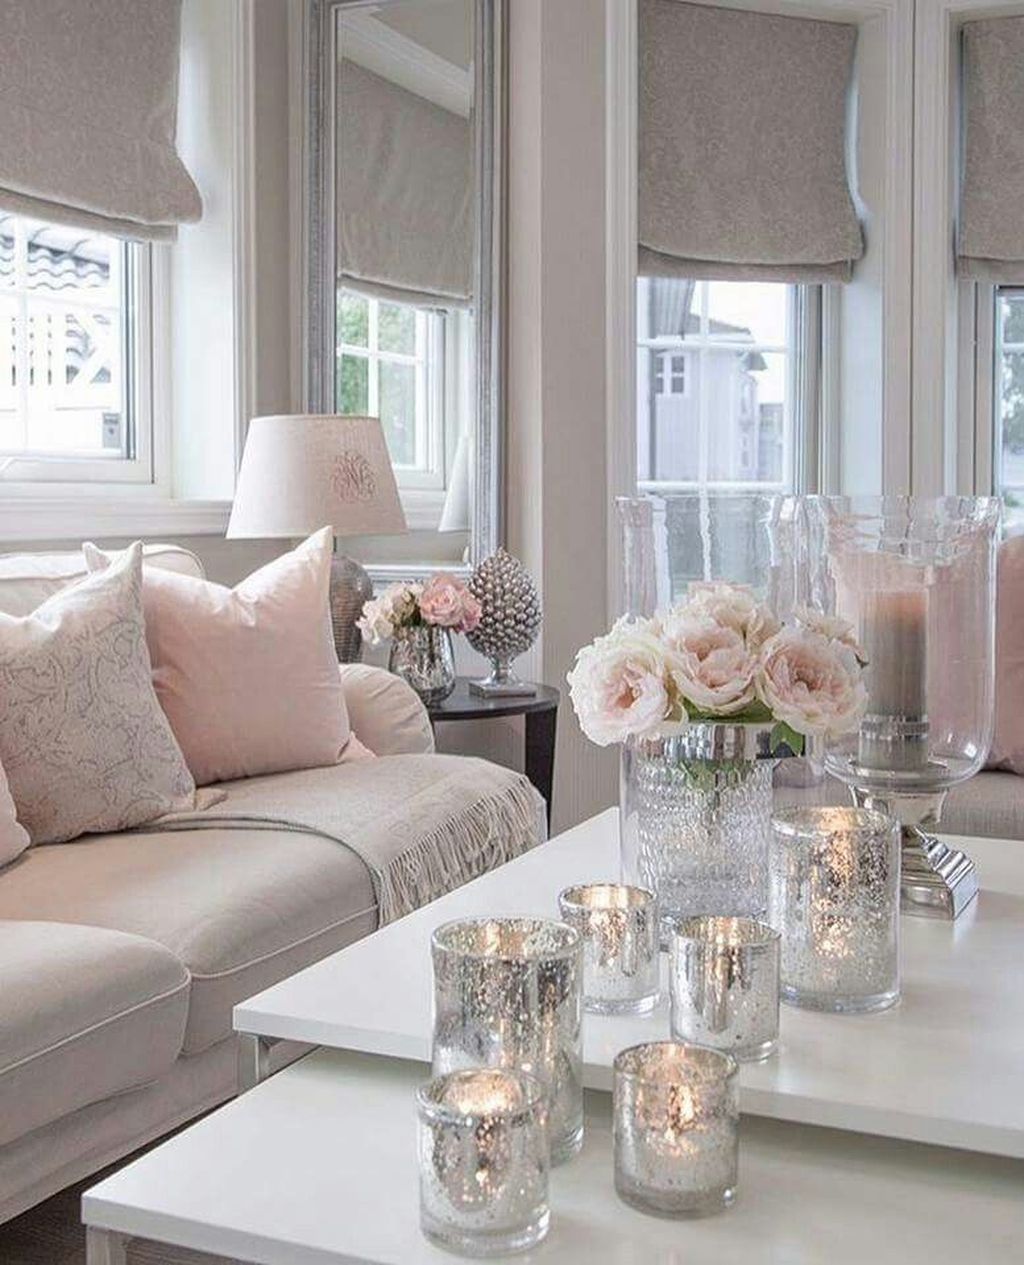 Home Decorating Living Room Ideas 2019: Pin By Homystyle On Living Room In 2019